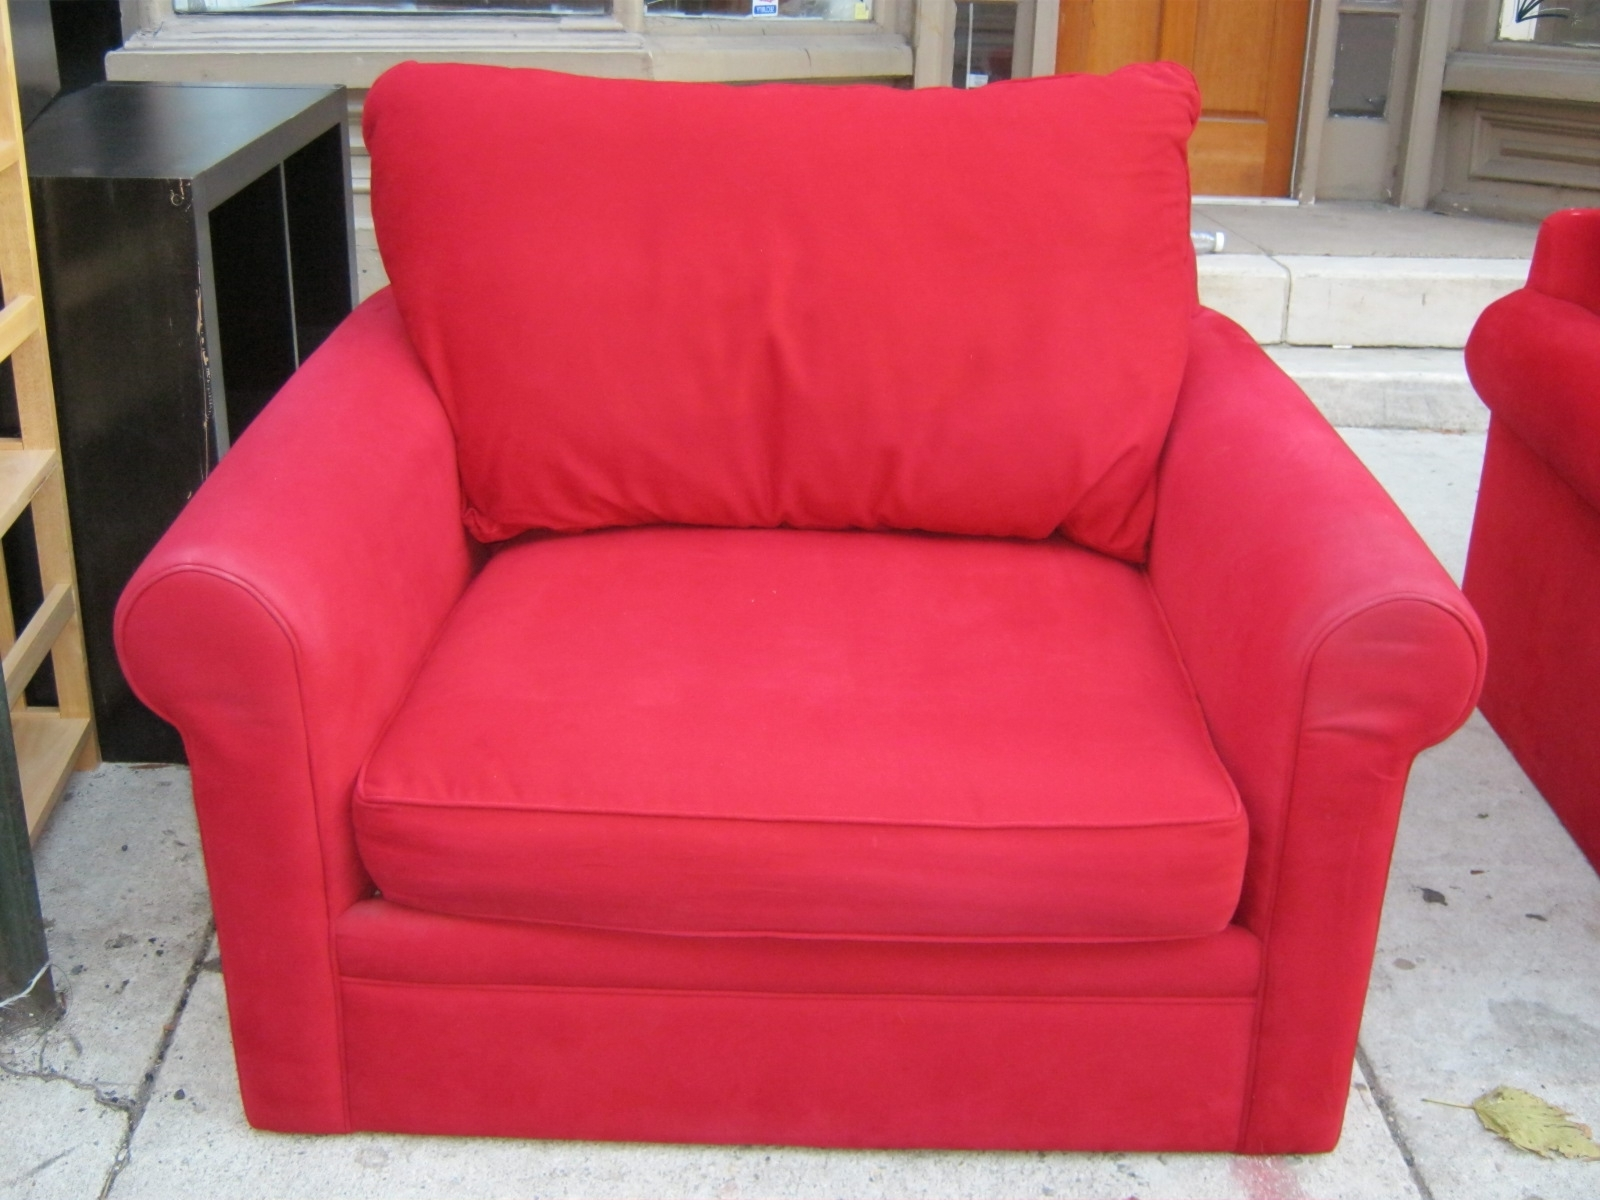 Most Popular Red Sofa Chairs Regarding Uhuru Furniture & Collectibles: Red Sofa Chair And Ottoman Set Sold (View 5 of 15)